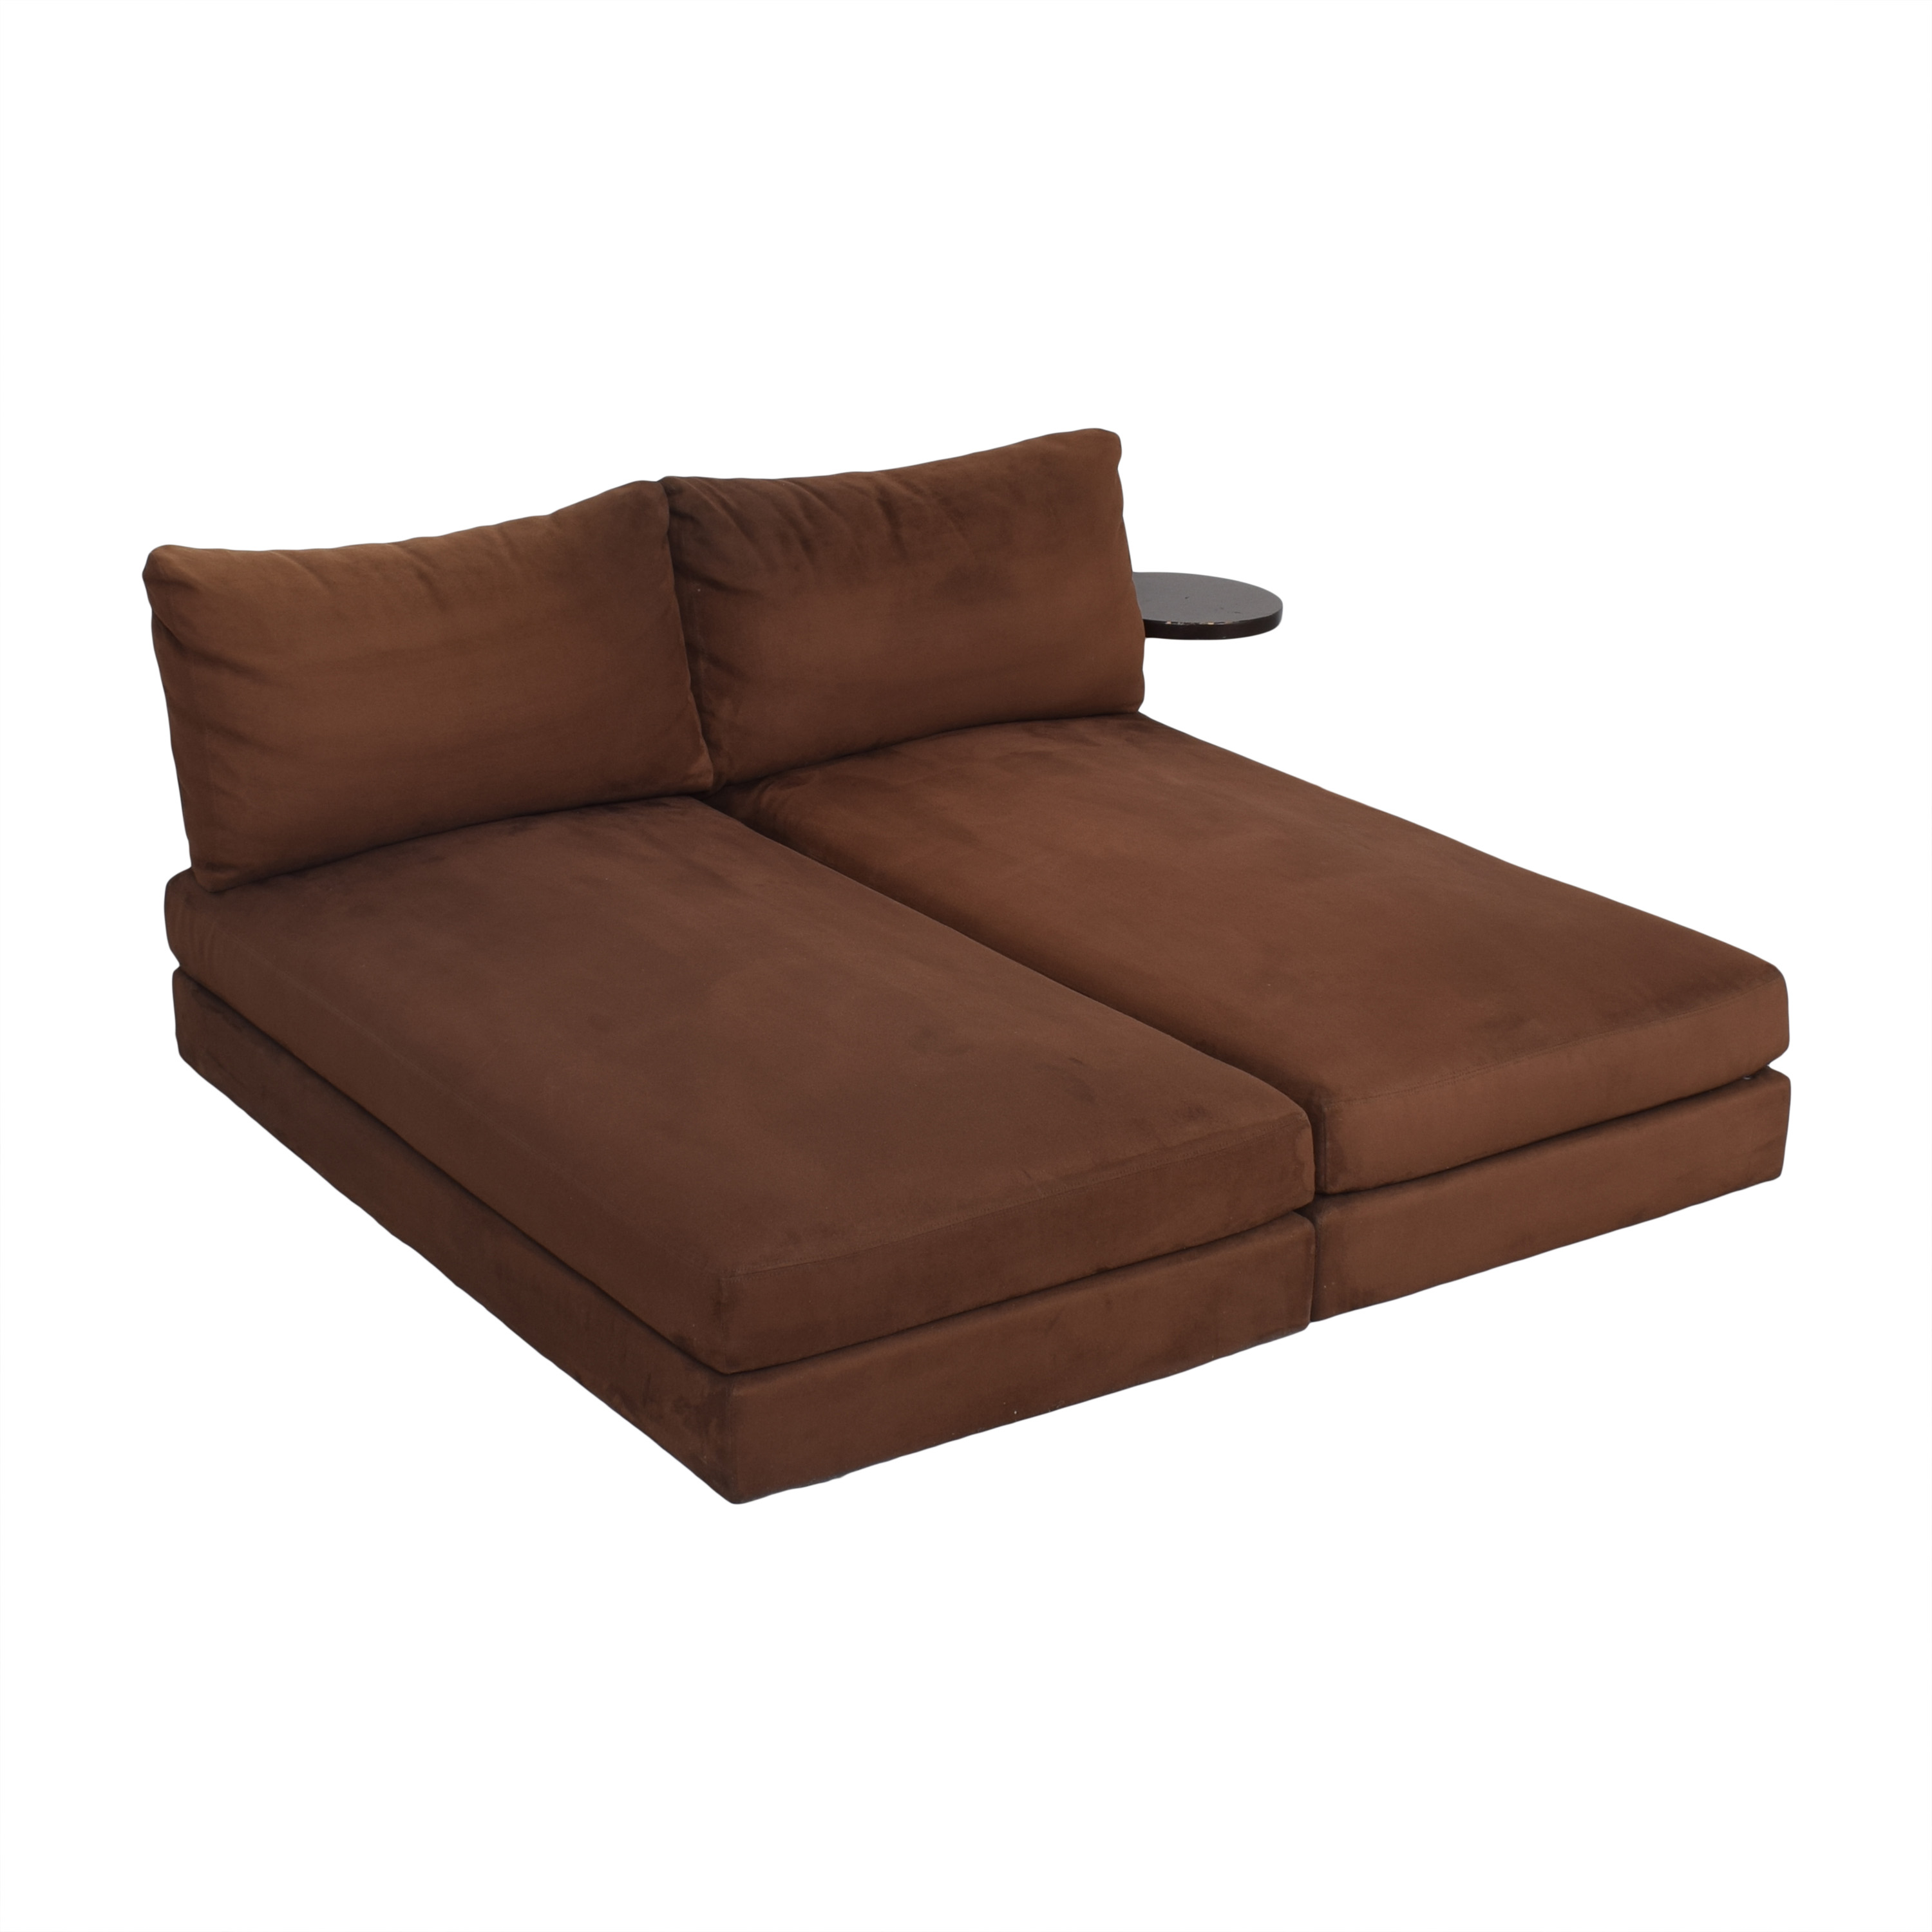 King Furniture King Furniture Suede Chaise Sectional with Table Attachment Sectionals